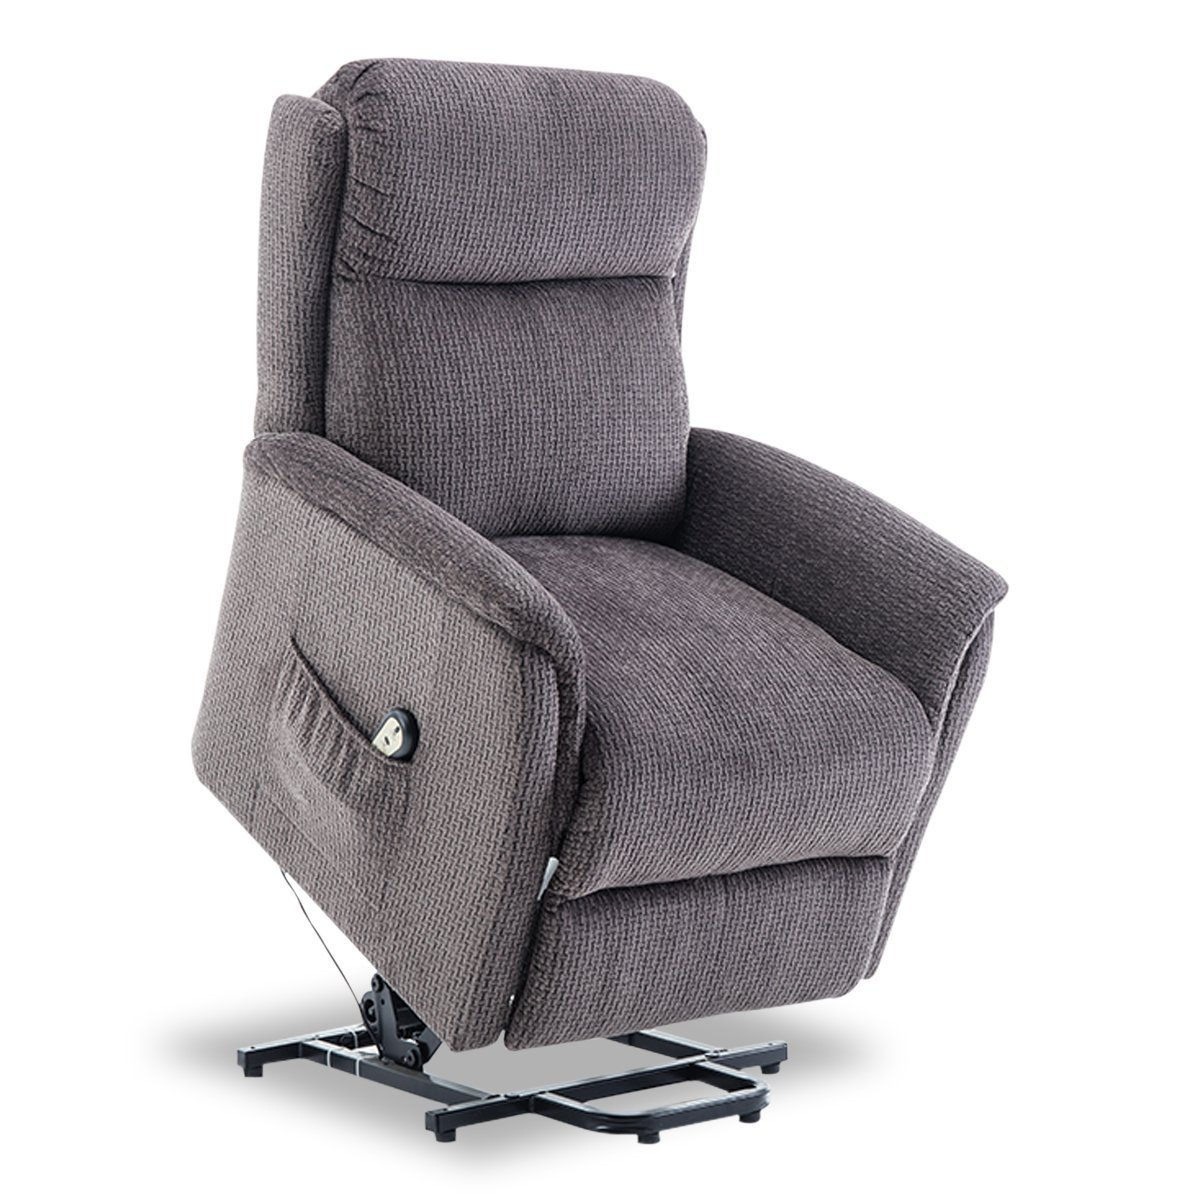 Bonzy Lift Recliner Power Lift Chair Soft And Warm Fabric